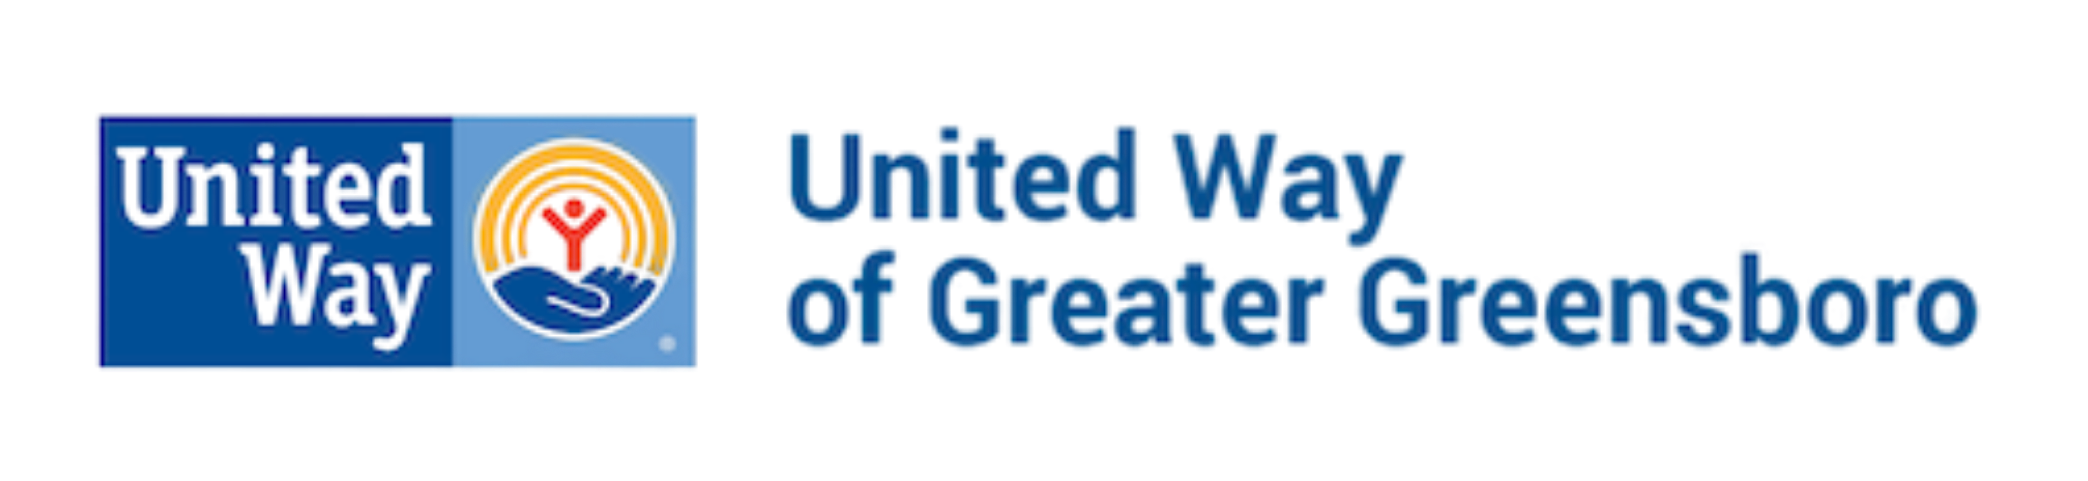 United Way of Greater Greensboro logo